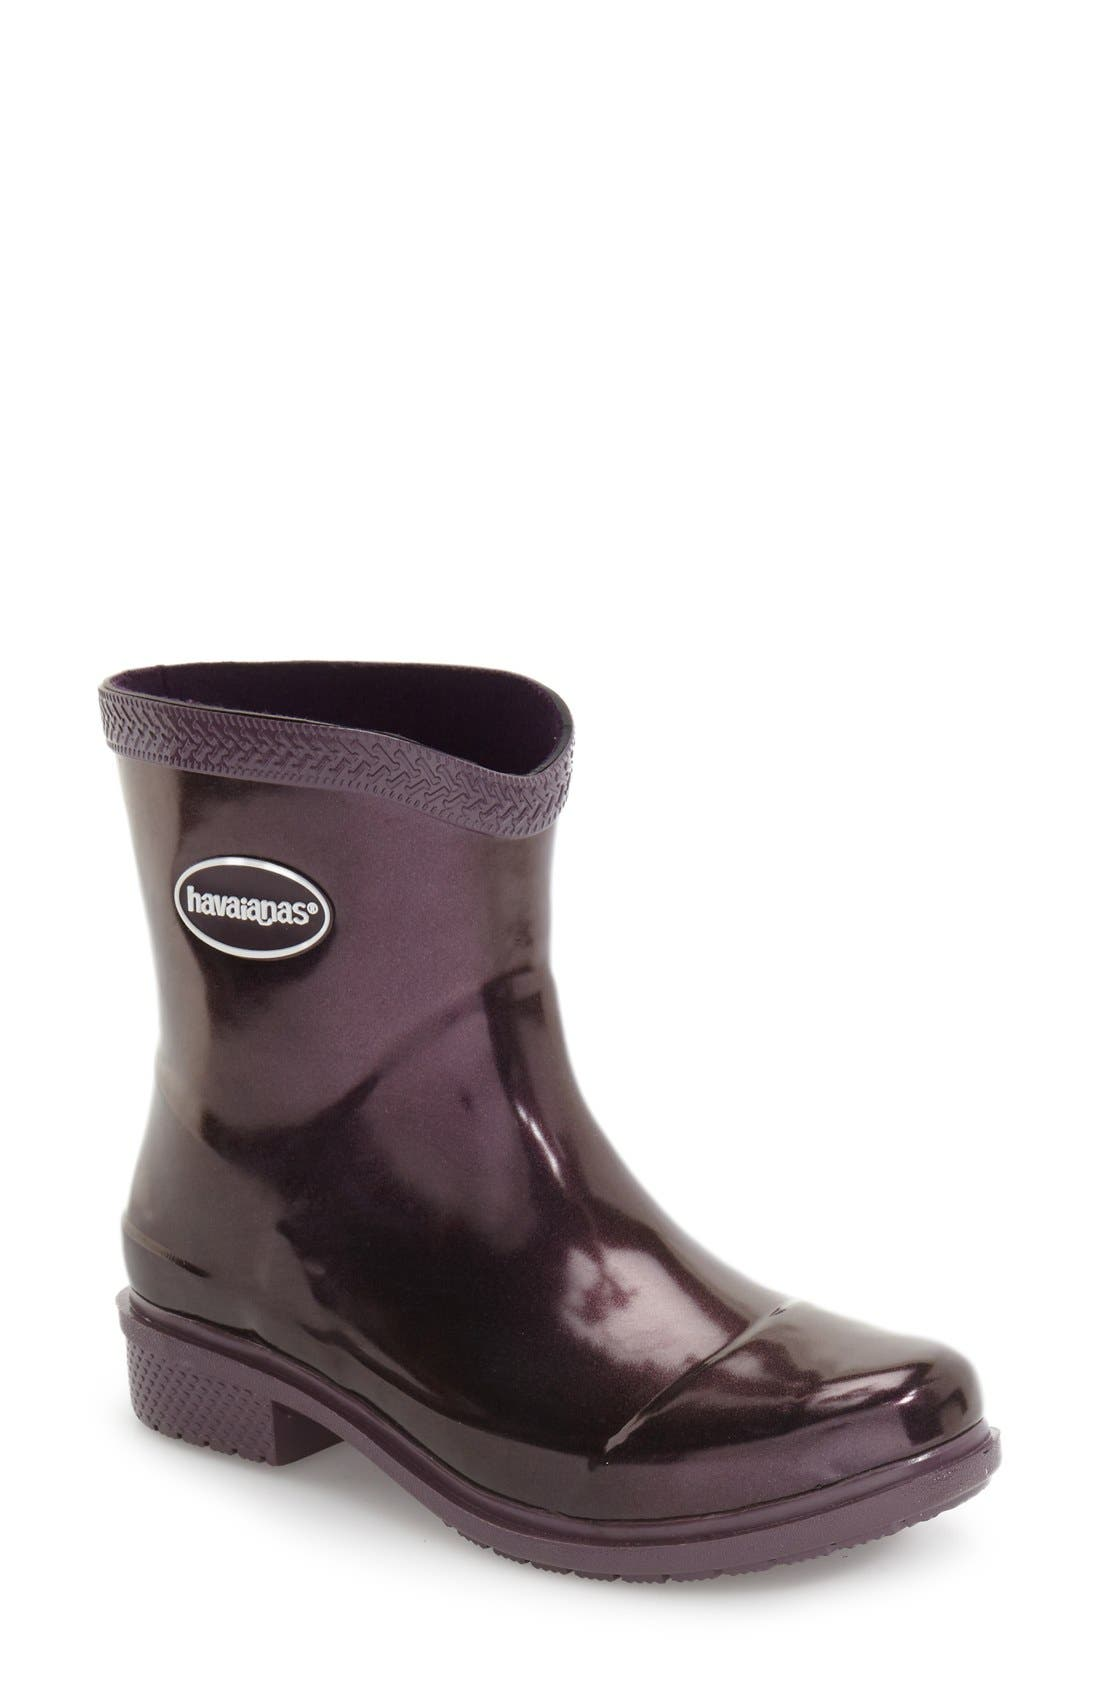 Main Image - Havaianas 'Galochas Low Metallic' Waterproof Rain Boot (Women)